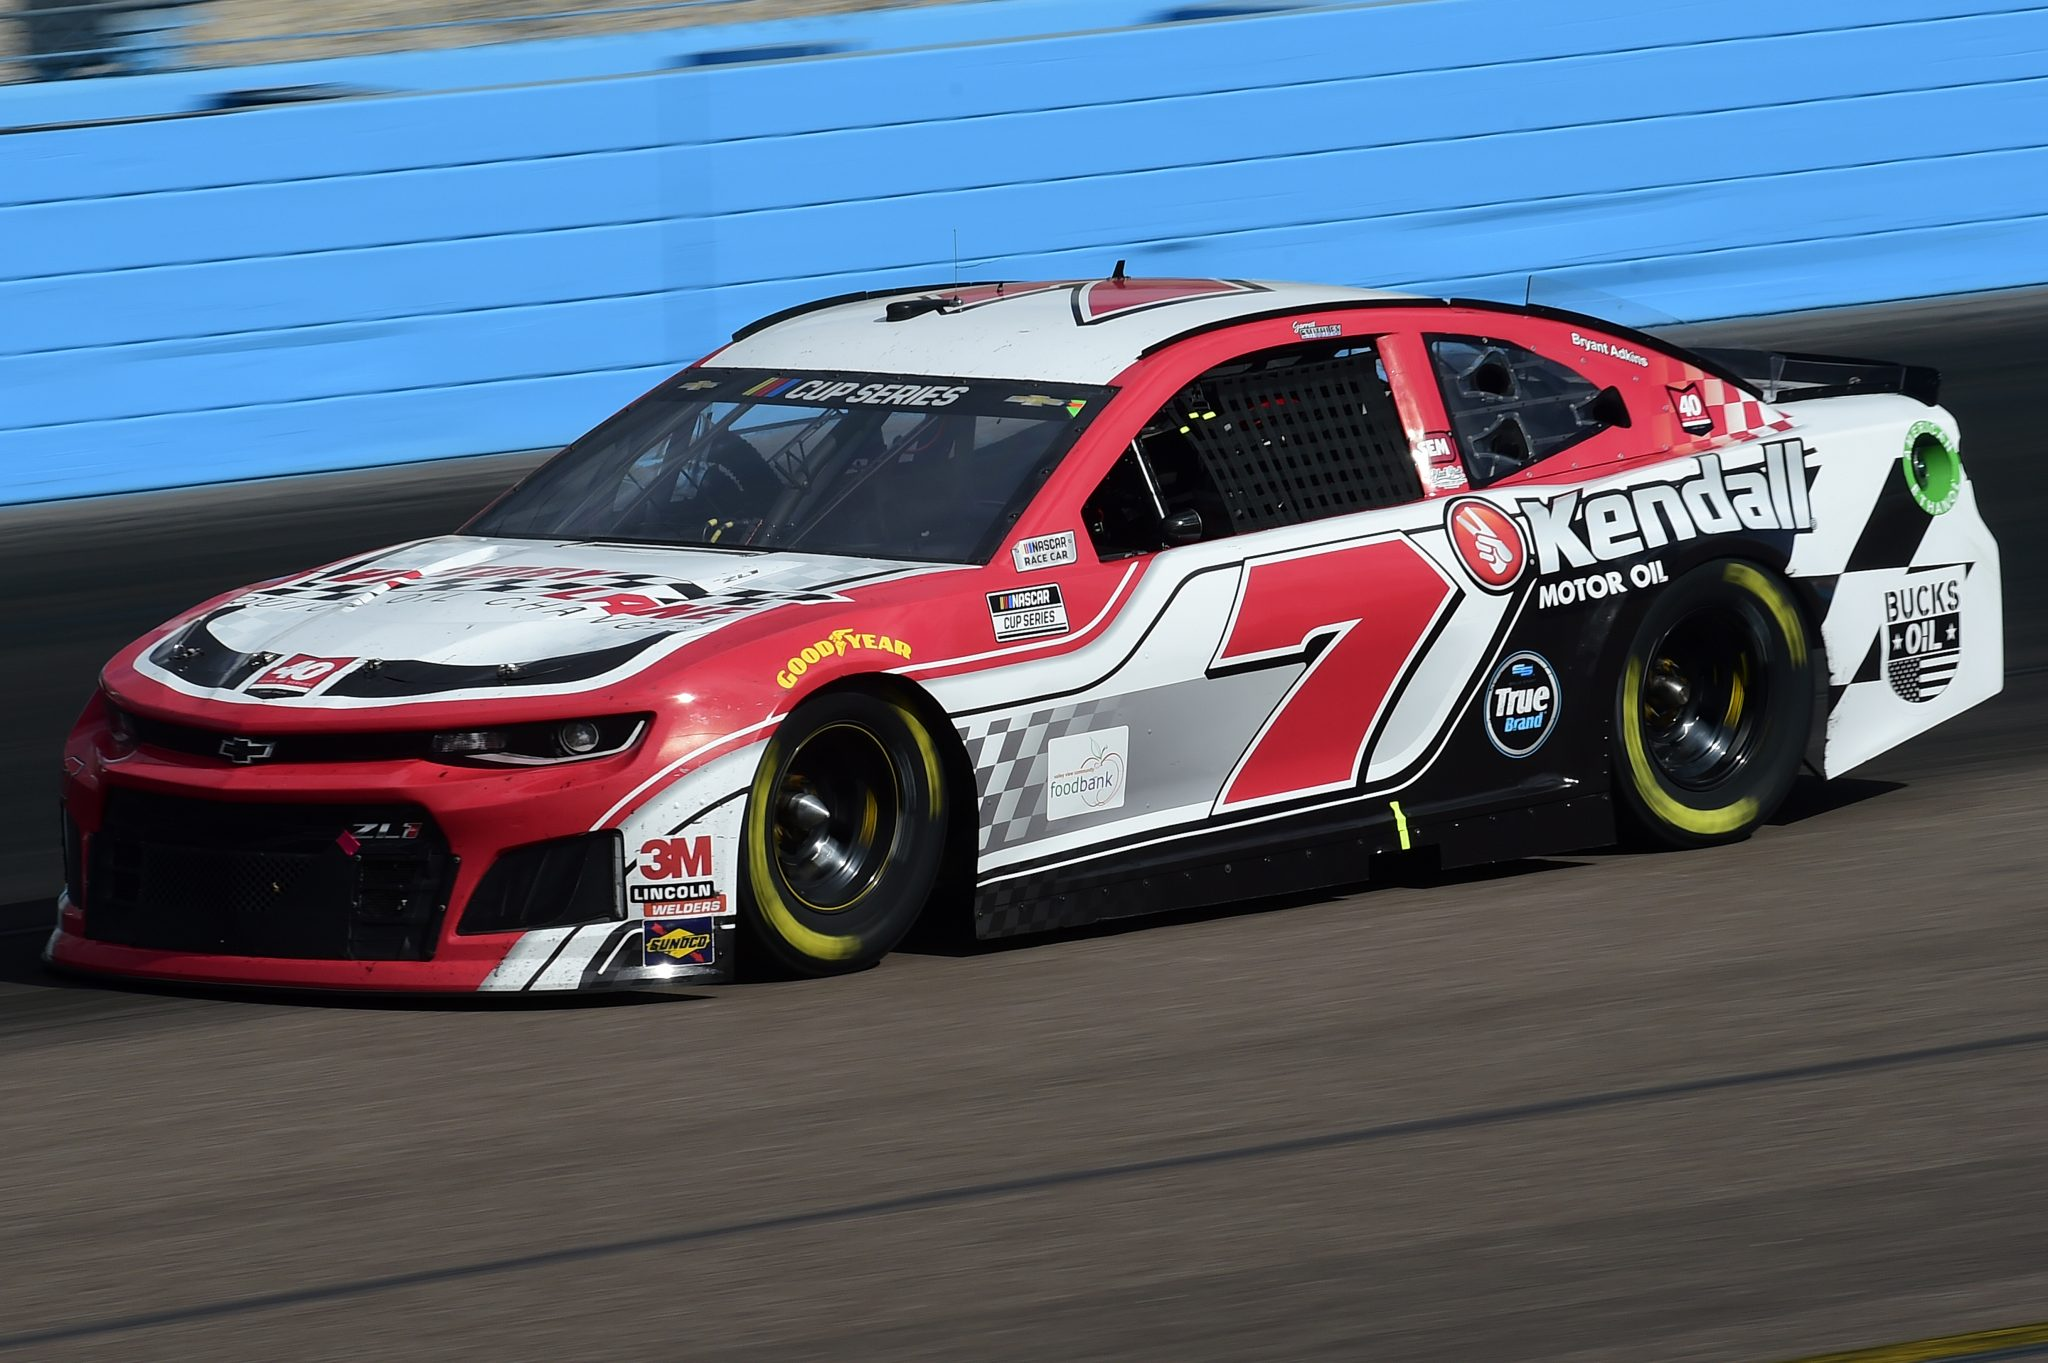 AVONDALE, ARIZONA - NOVEMBER 08: Garrett Smithley, driver of the #7 Victory Lane Oil Chevrolet, drives during the NASCAR Cup Series Season Finale 500 at Phoenix Raceway on November 08, 2020 in Avondale, Arizona. (Photo by Jared C. Tilton/Getty Images) | Getty Images